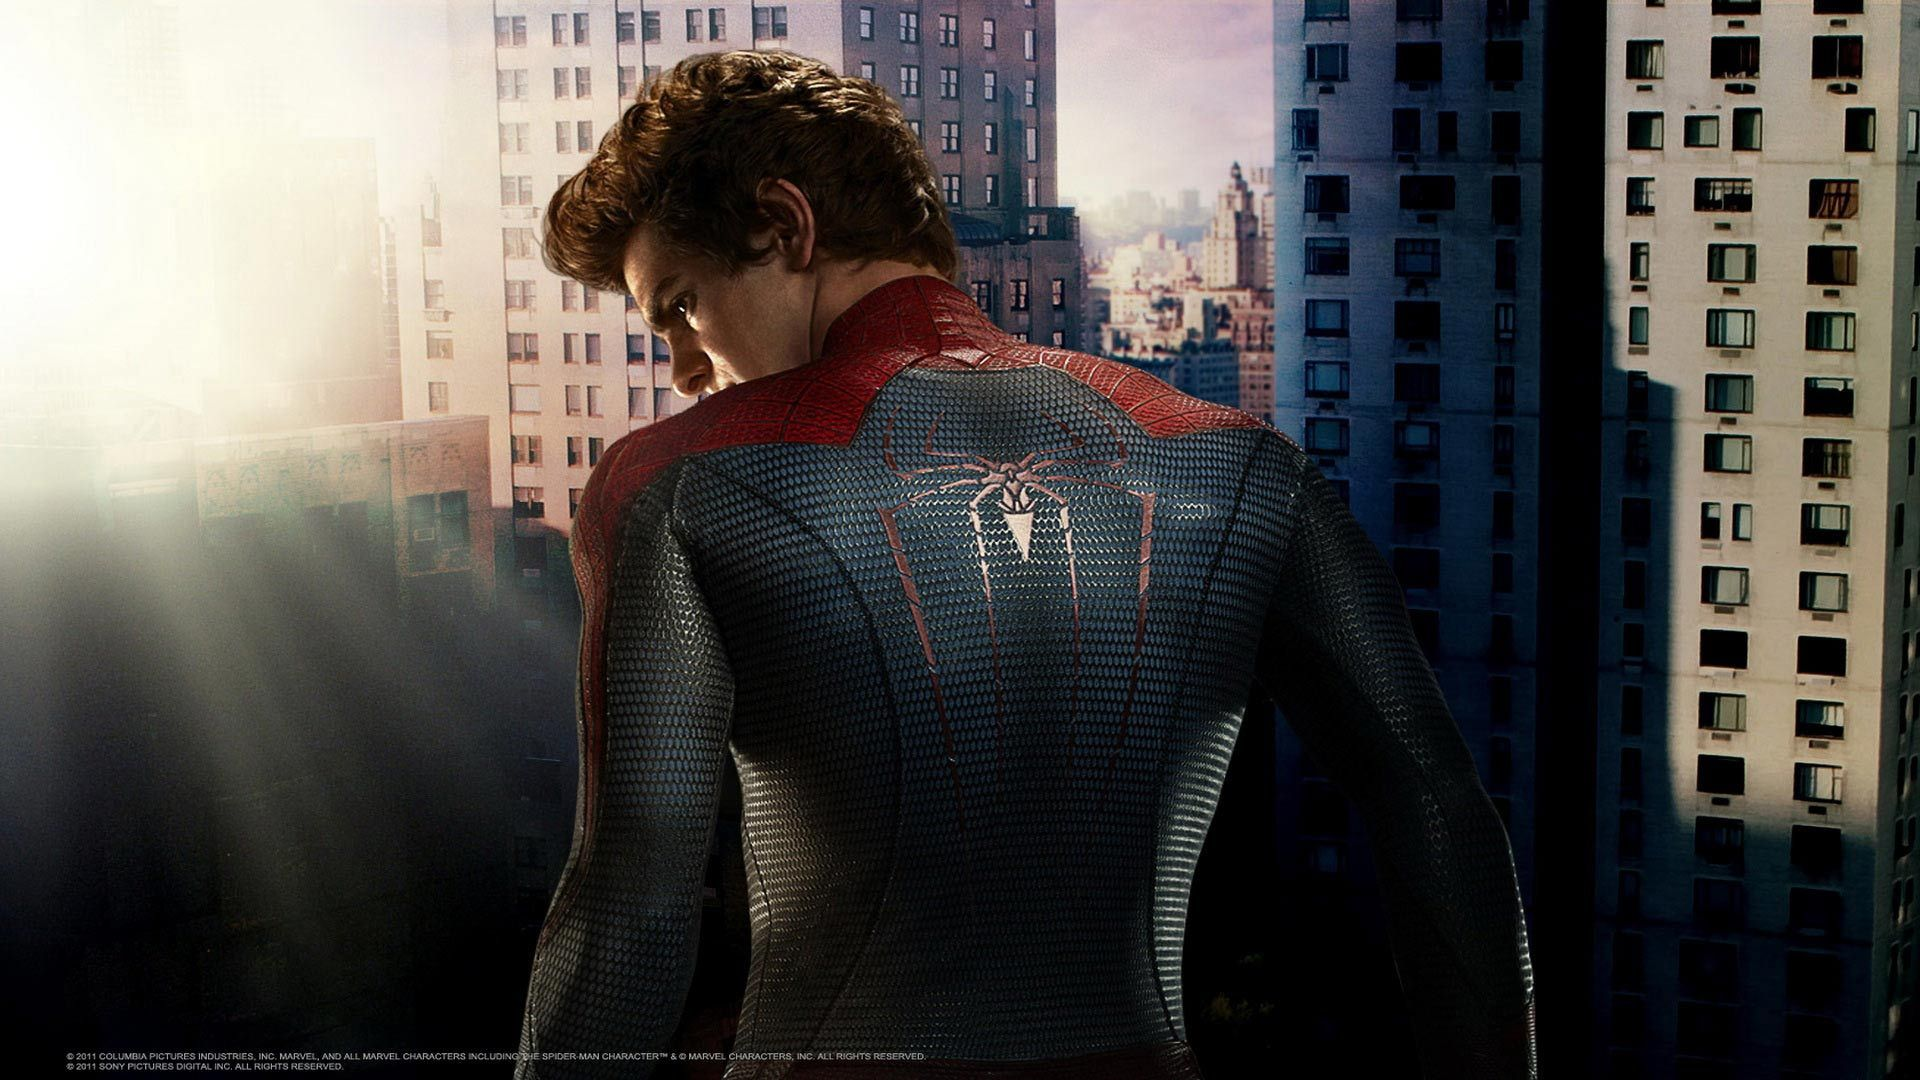 Lumia Movie The Amazing SpiderMan Wallpaper ID 640x640 Spider Man 2 Wallpapers 44